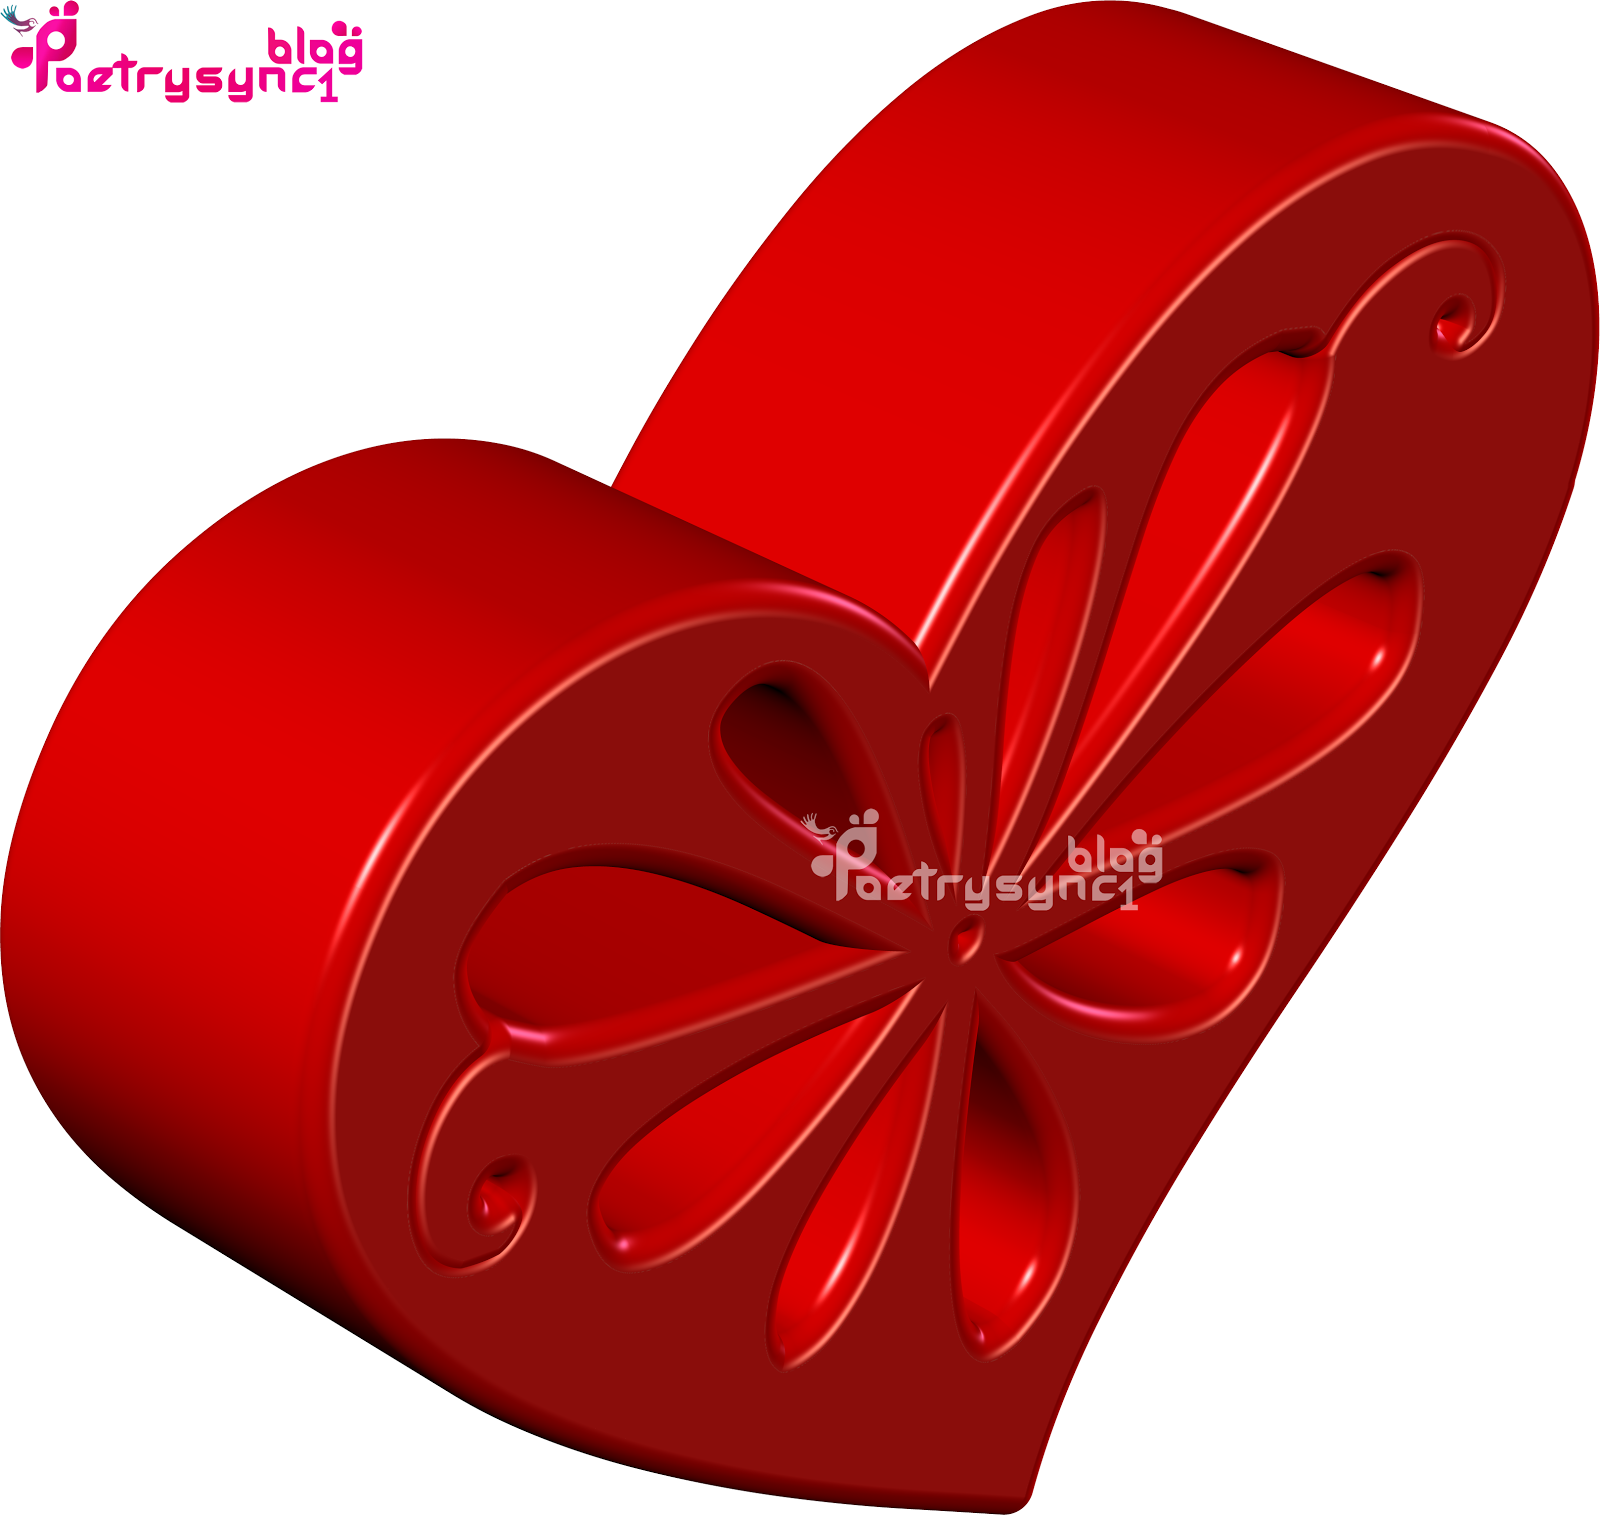 Love 3D Heart Image Wallpaper In Red Colour By Poetrysync1.blog